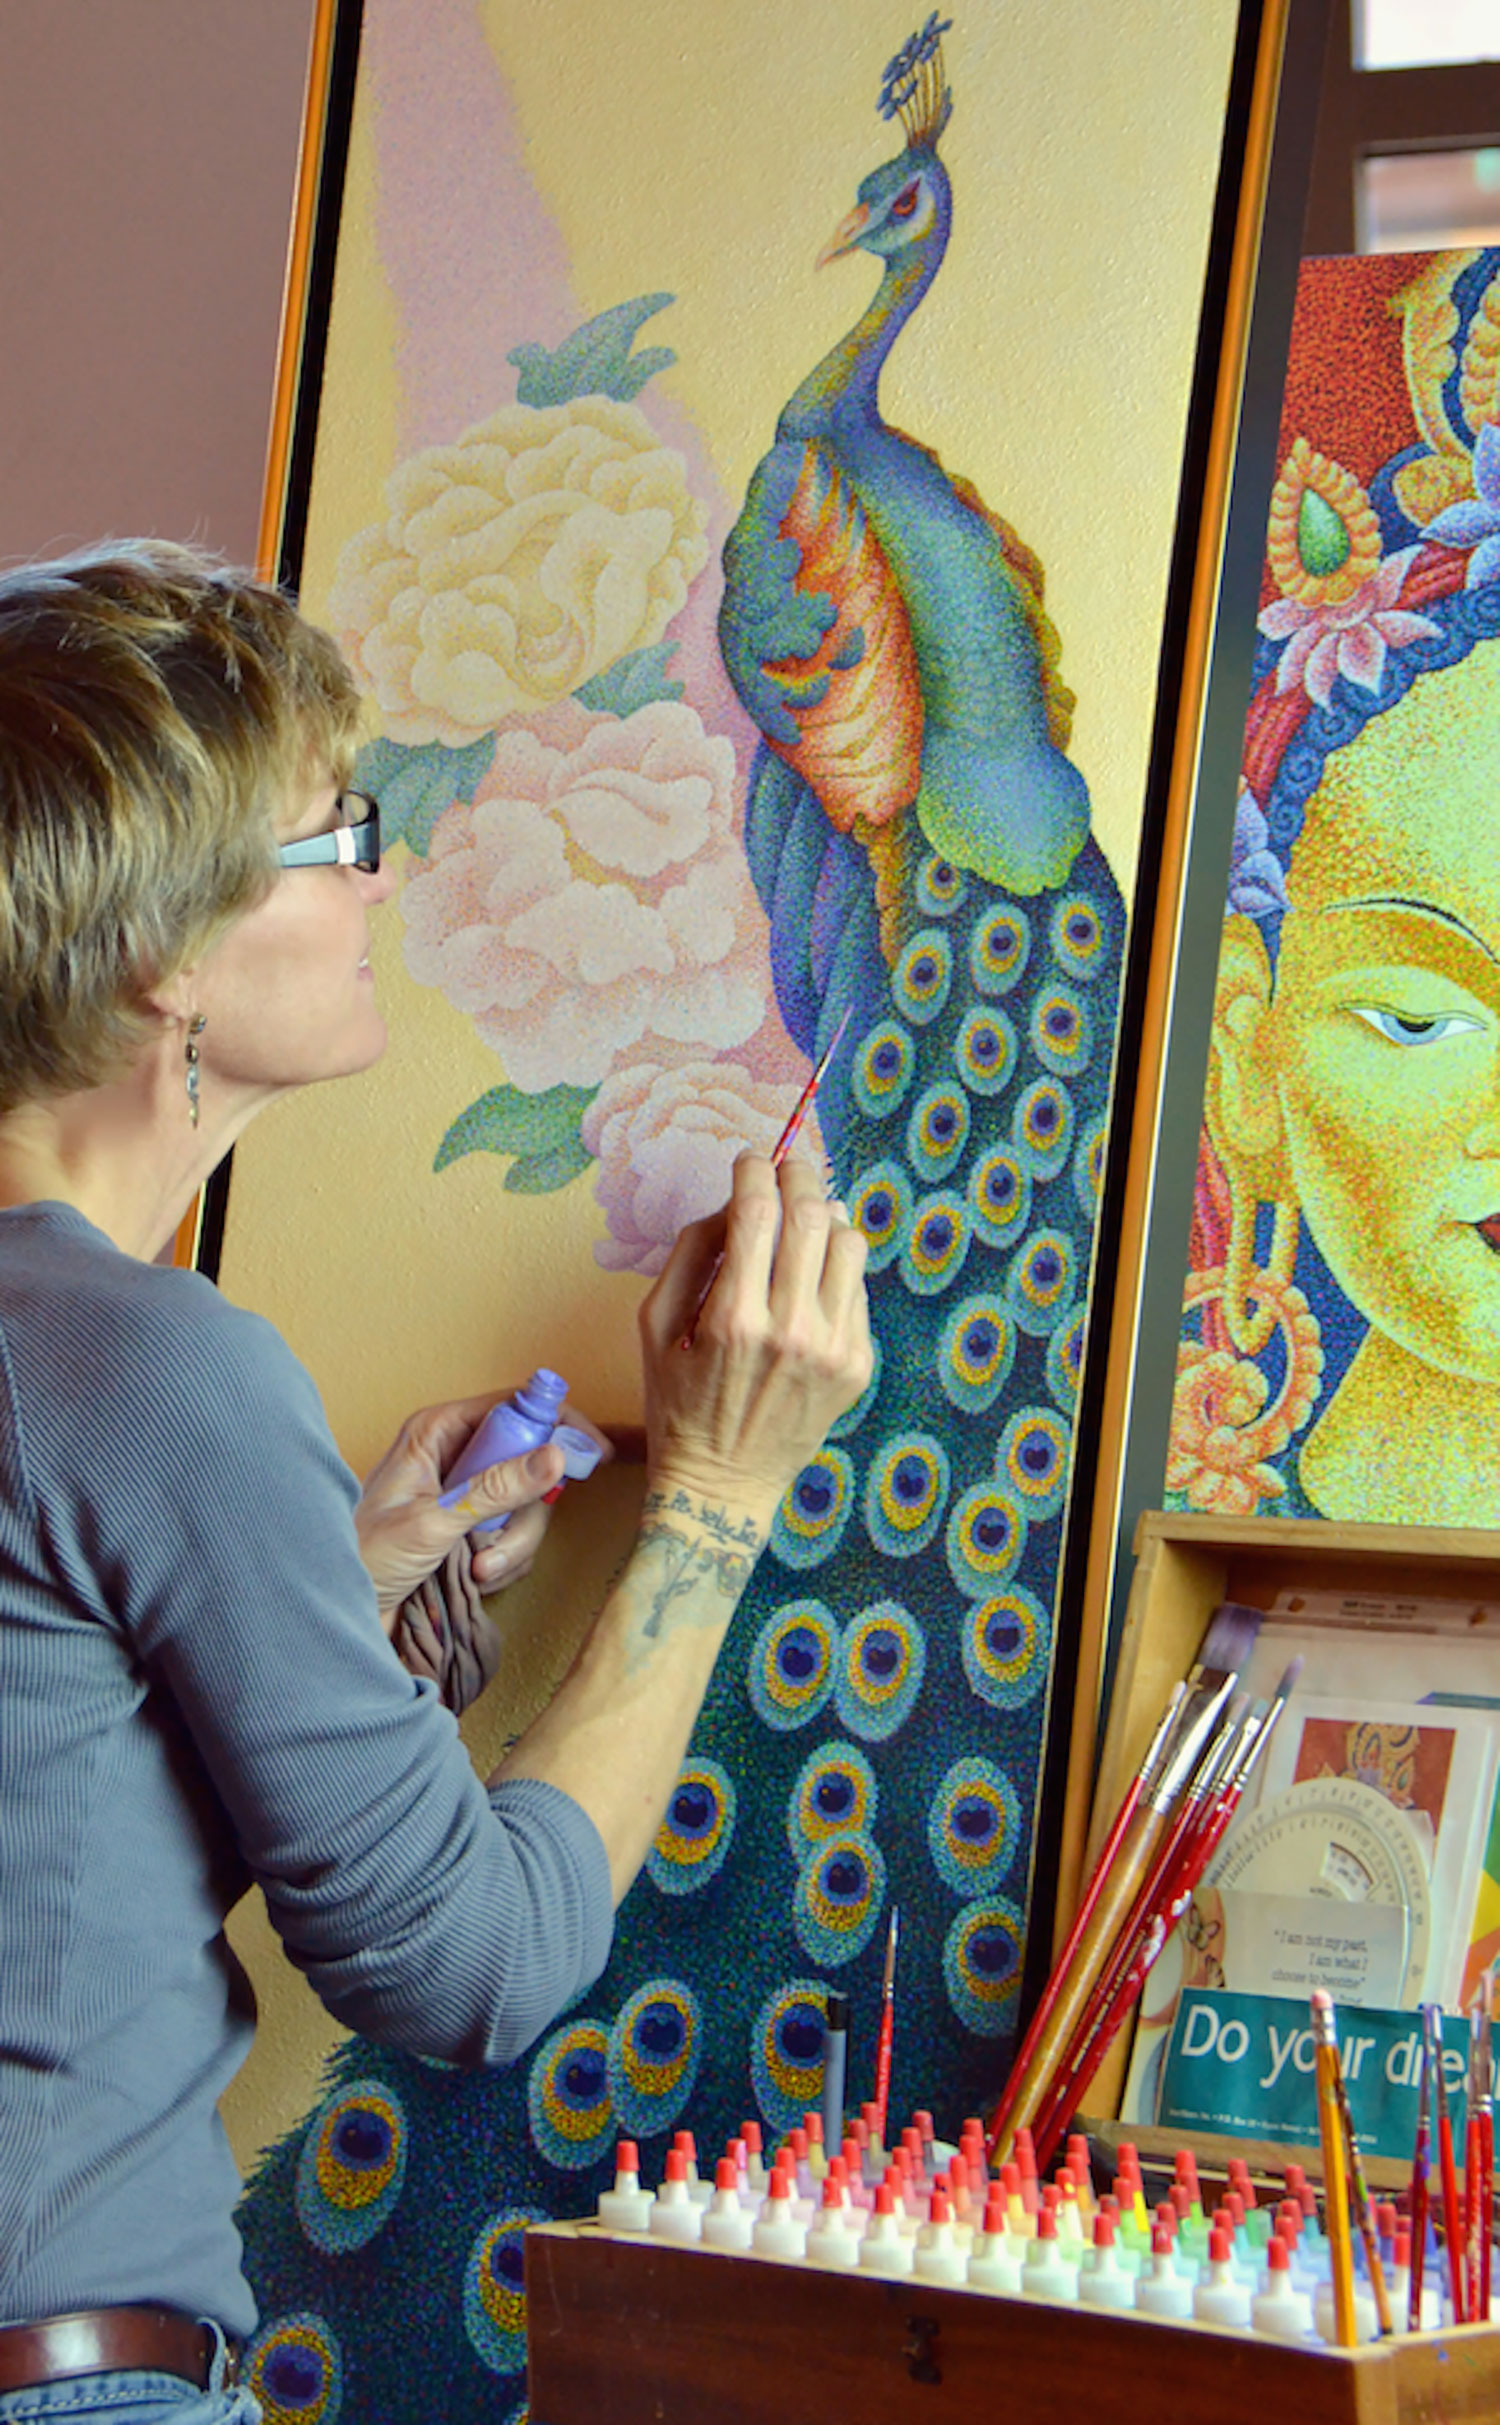 Artist Sherab Khandro painting a peacock